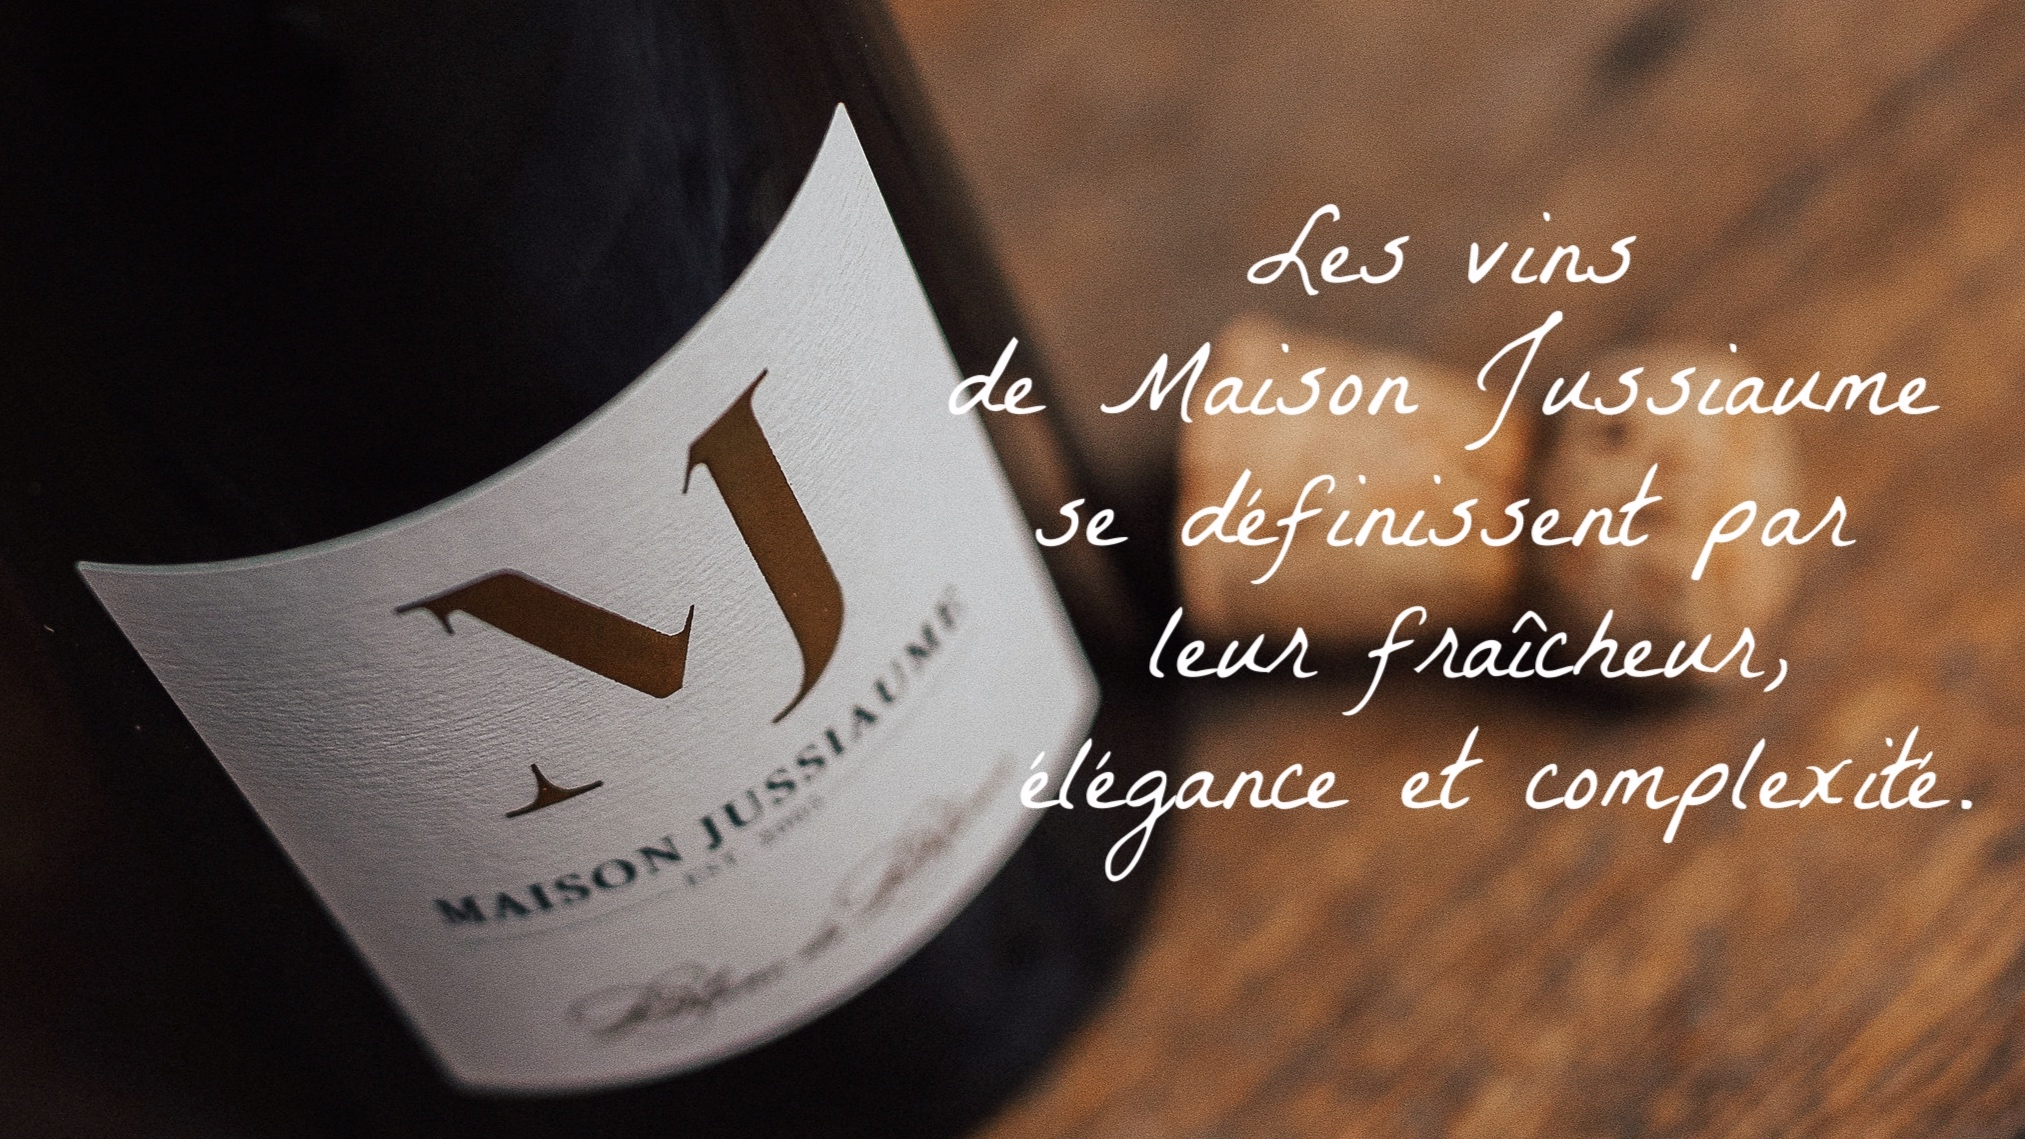 """The wines of the Loire Valley shaped my memories and my palate, and I continually strive for that same freshness, elegance and complexity in every bottle.""  Winemaker Jean-Michel Jussiaume"